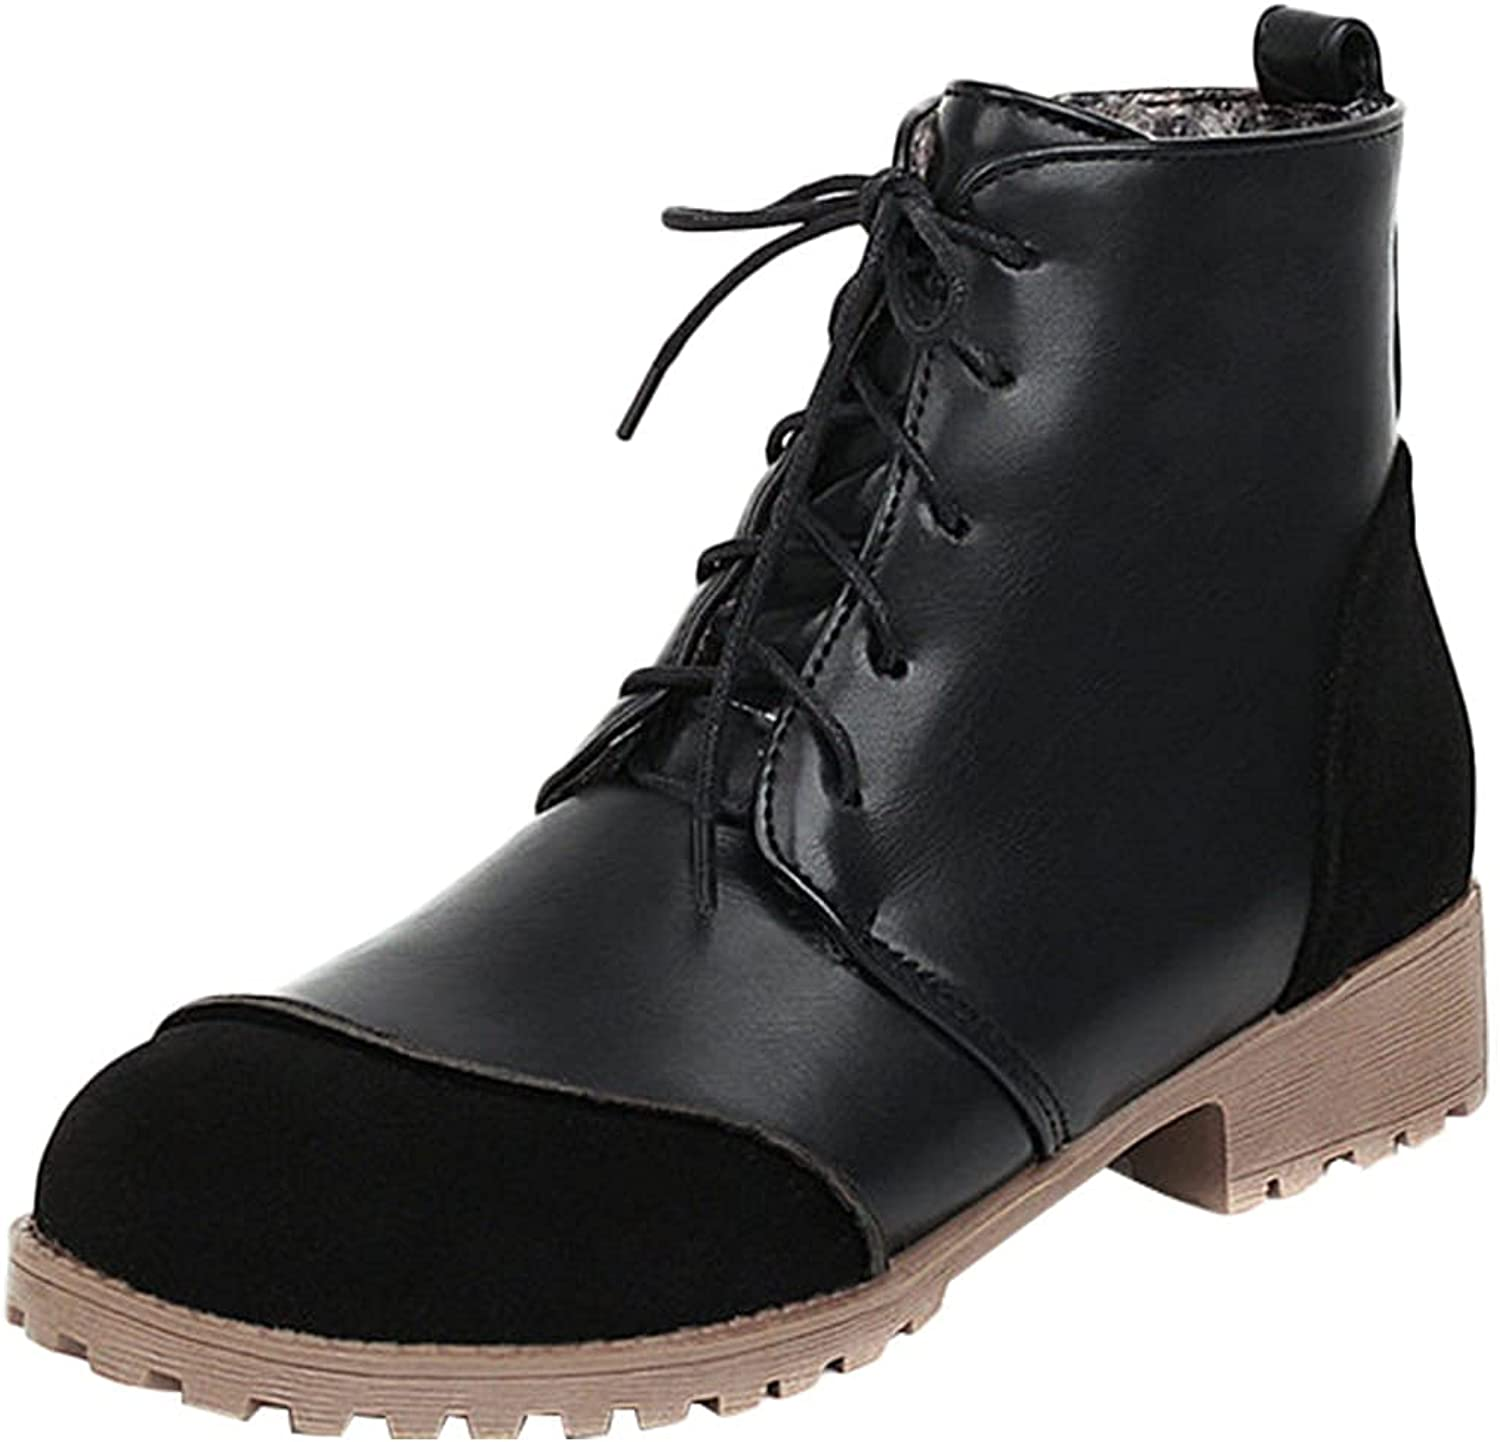 Lovor Women's Fashion Ankle Booties Causal 5-Eye Side Zipper Lace-up Combat Boots Slip Resistant Combat Service Boot